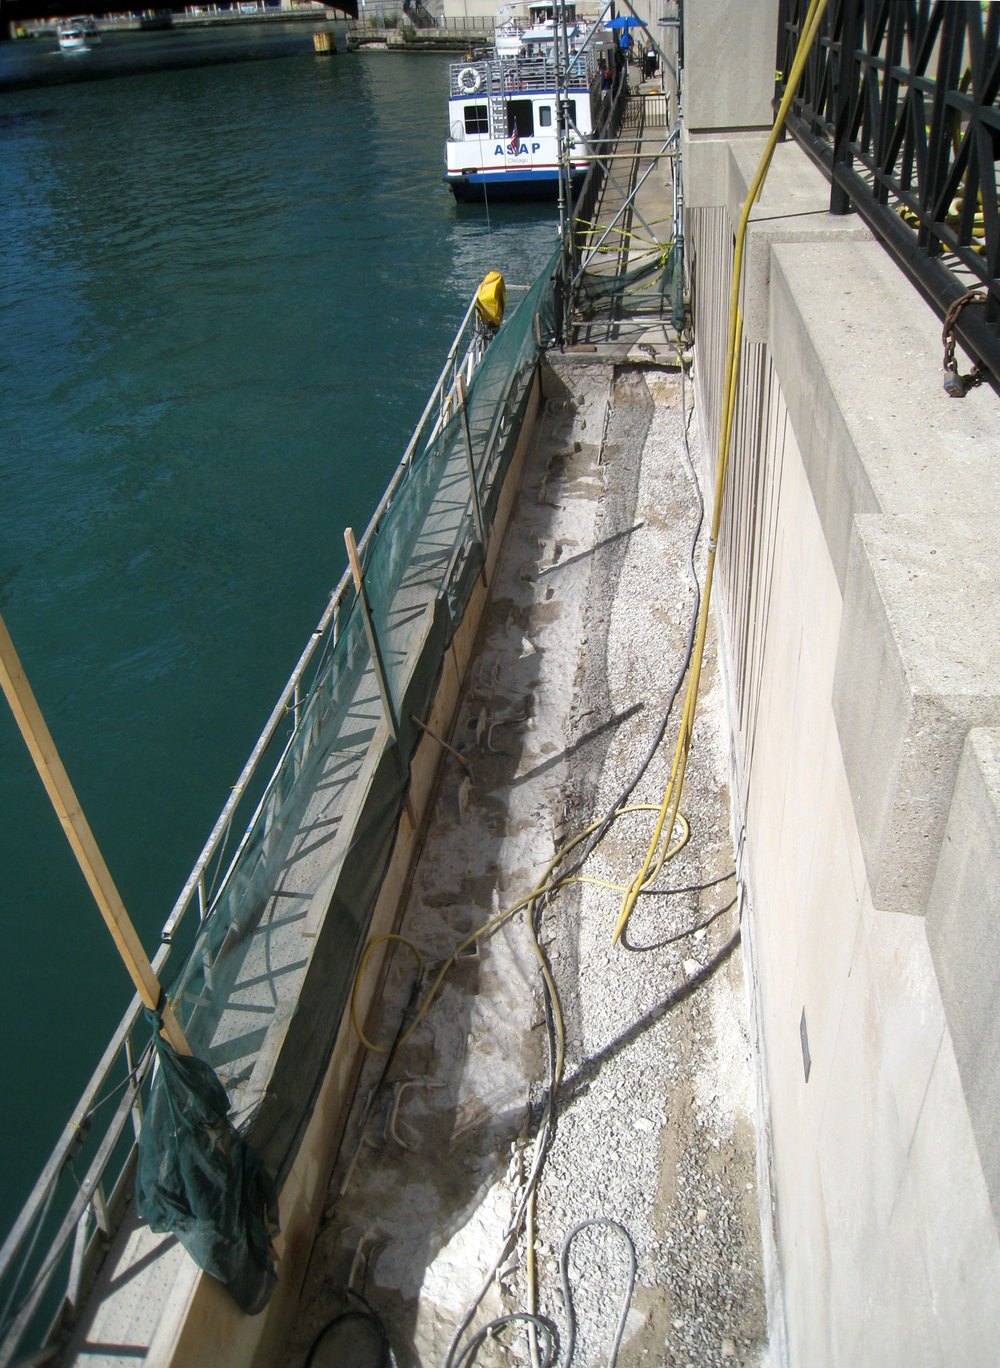 Under construction: lowering the dock to accommodate the boat deck height